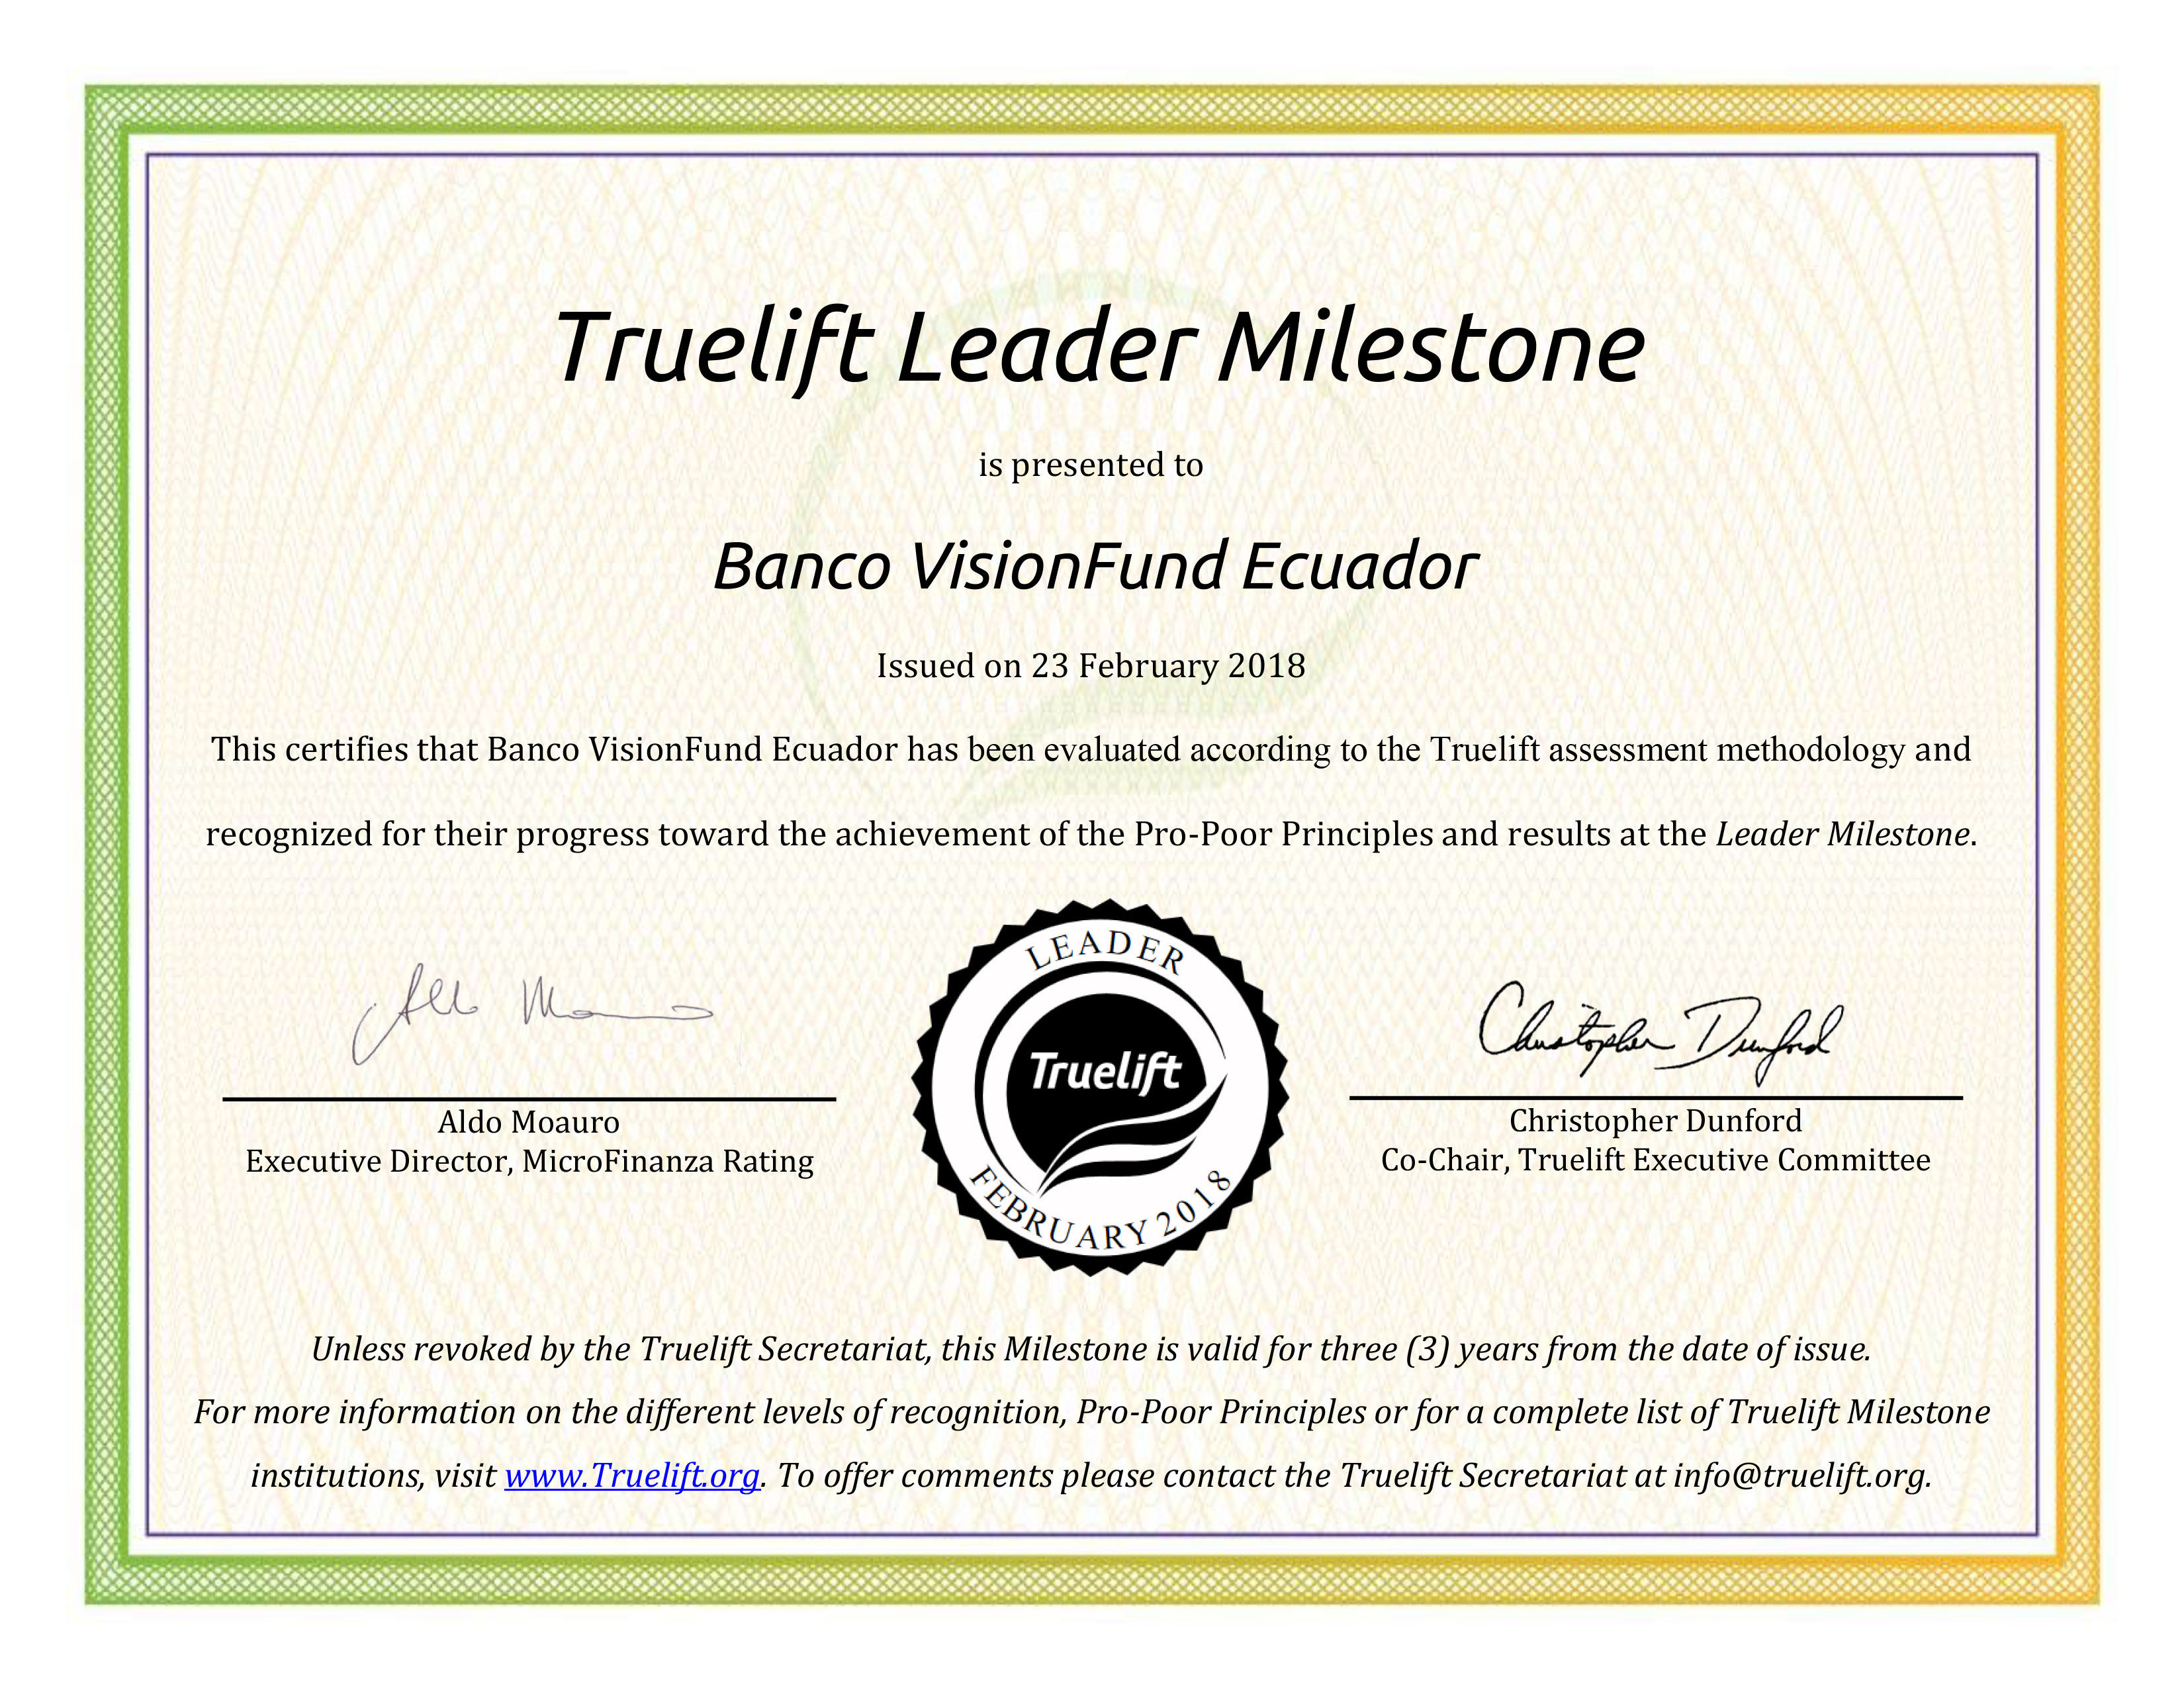 Banco VisionFund Ecuador has been awarded the Truelift Leader Milestone